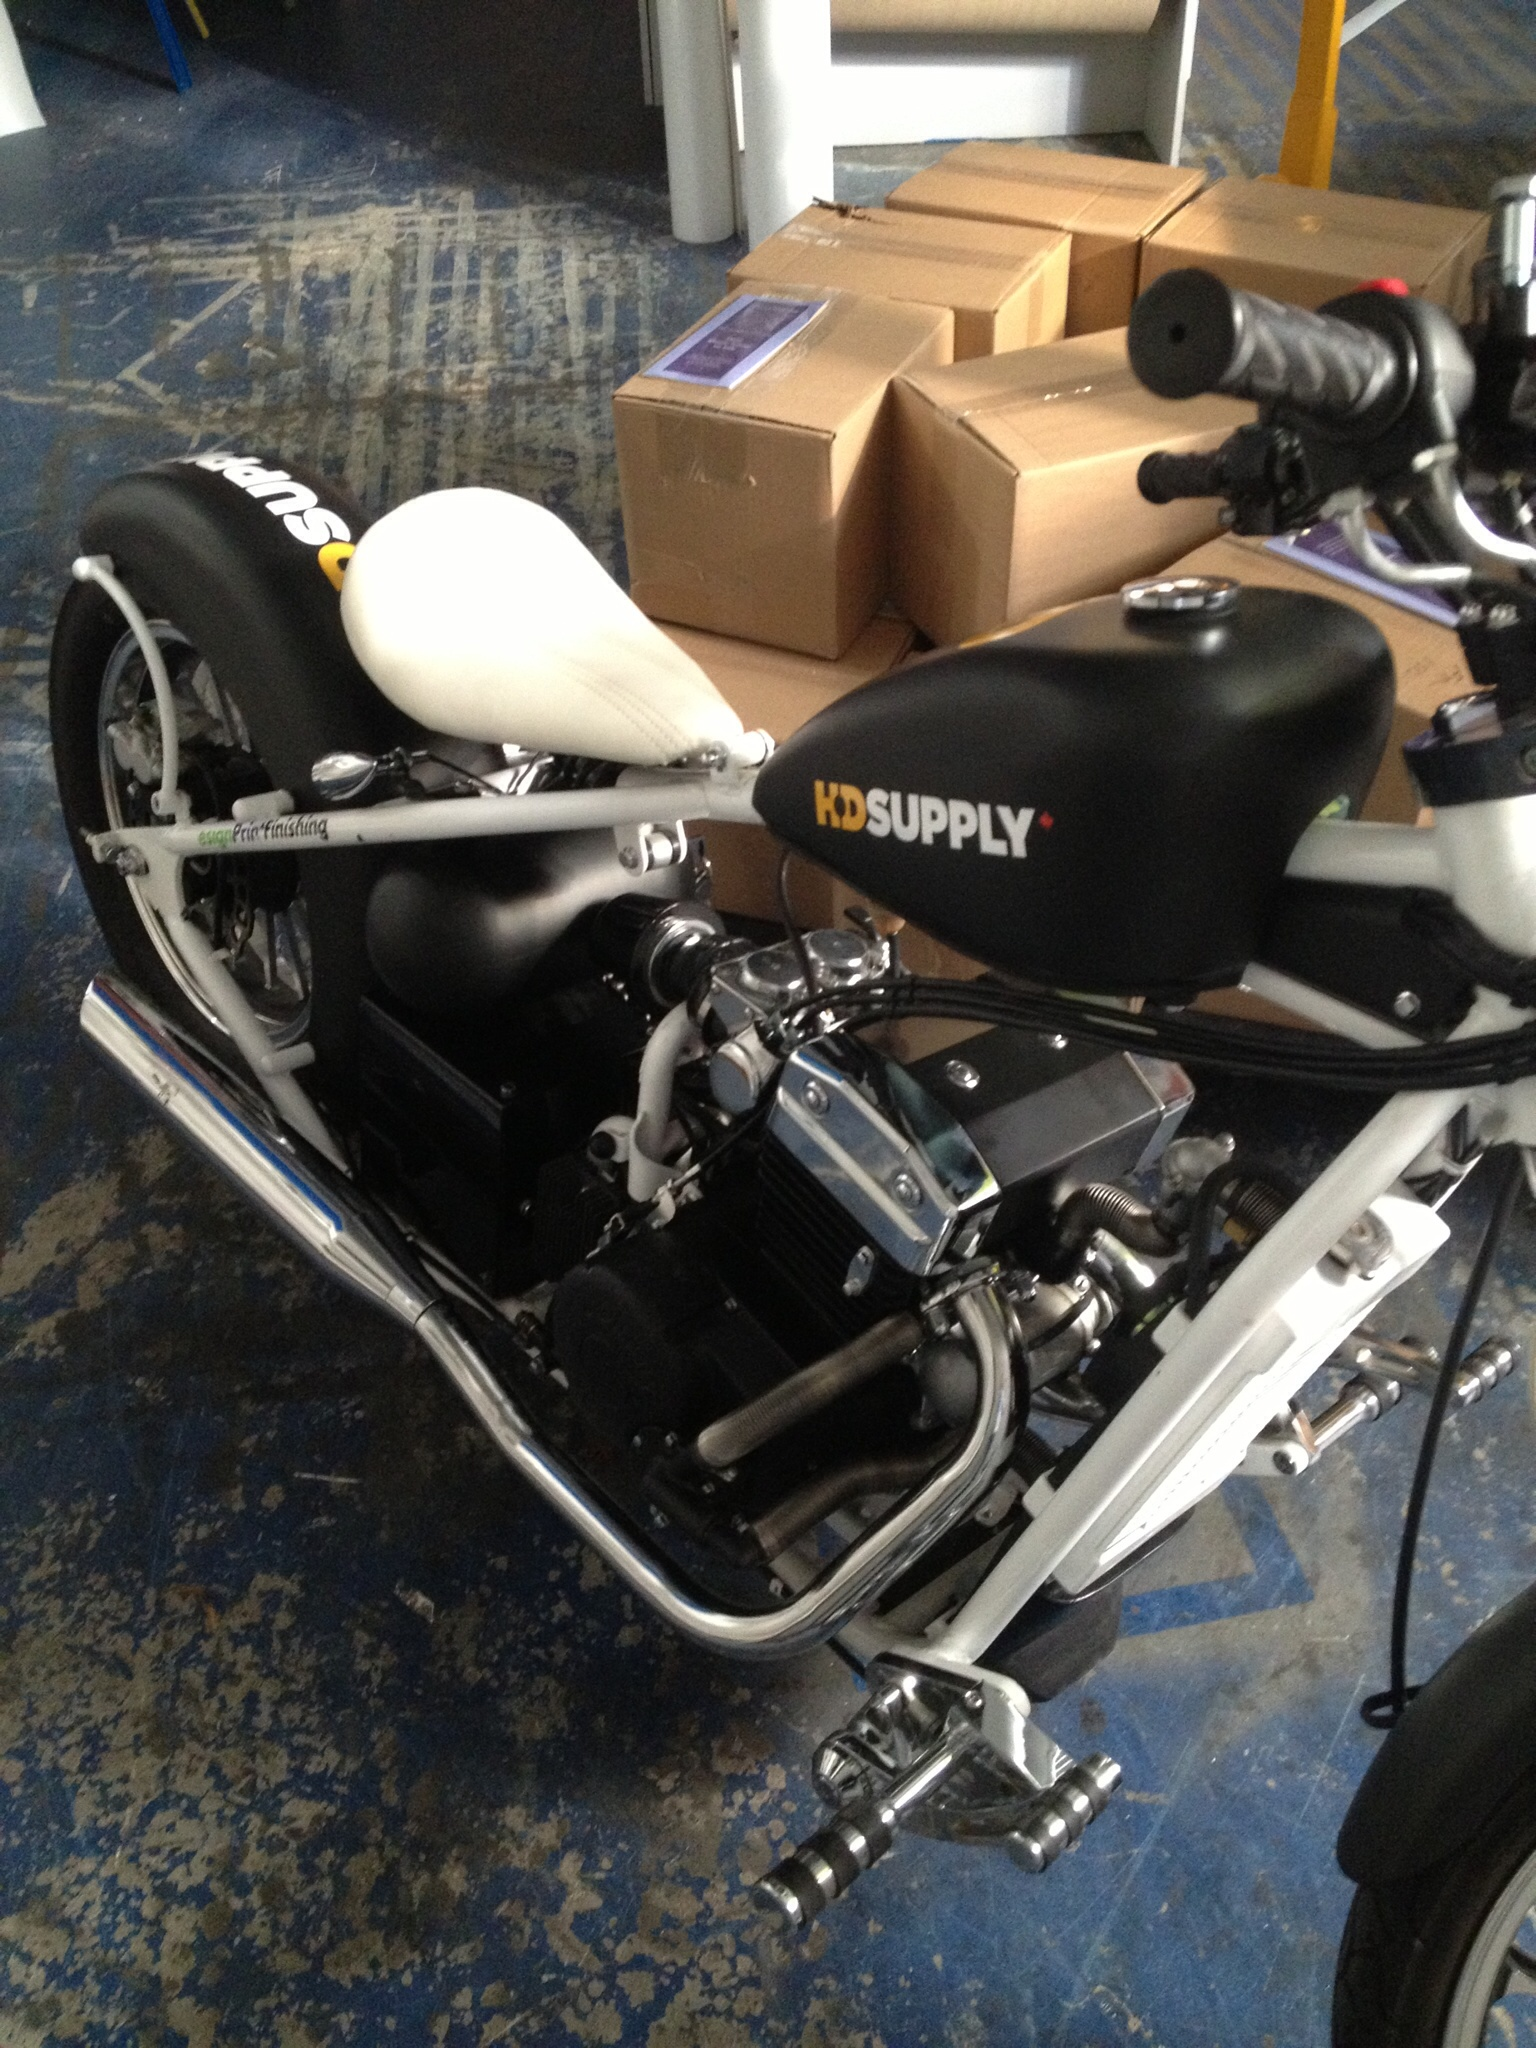 Motorcycle wrap - HD Supply